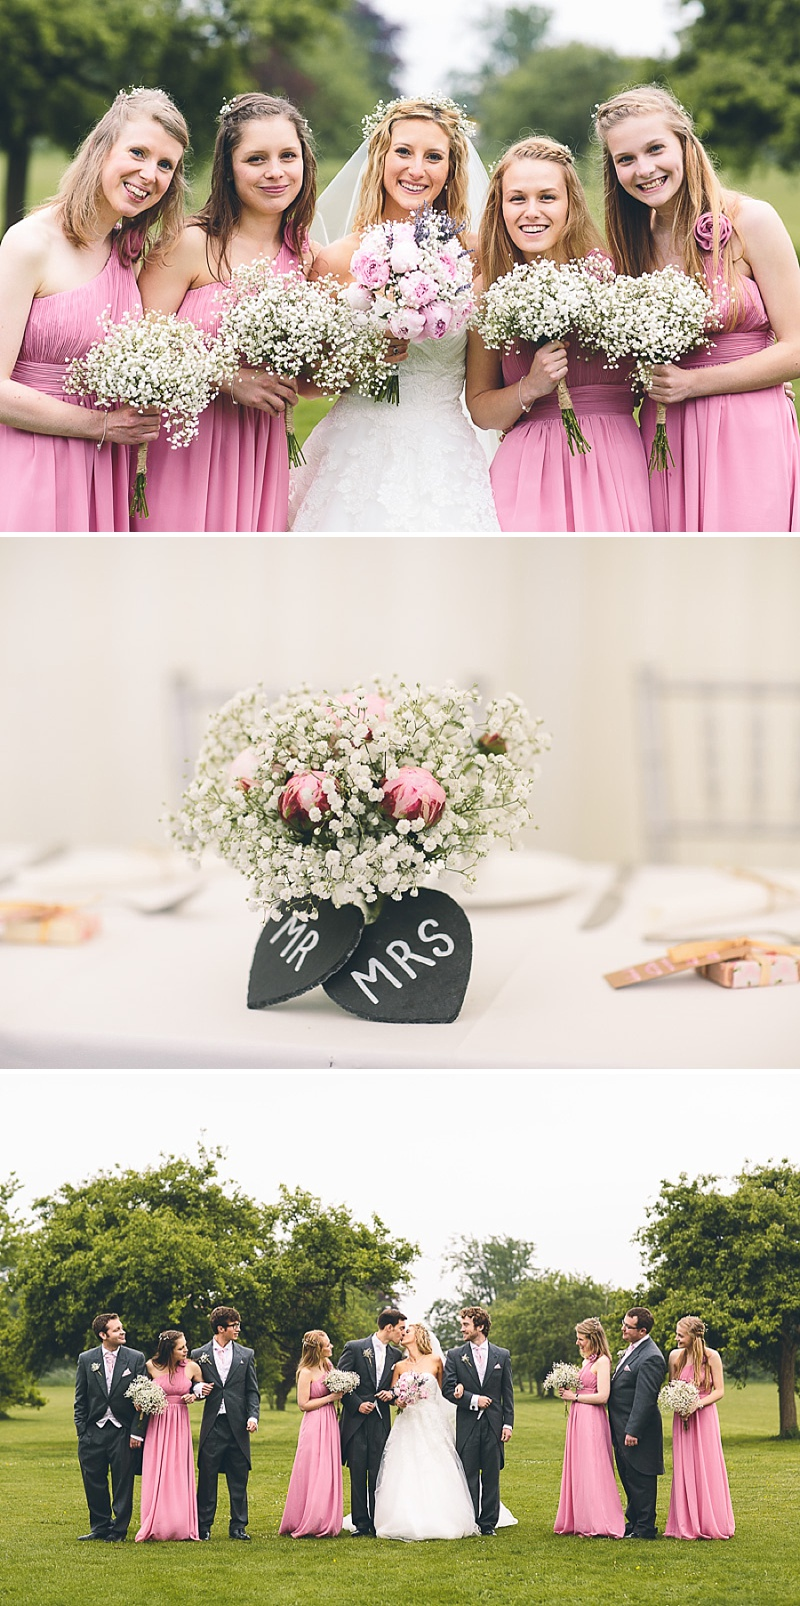 Church Wedding In Cambridge, Reception at Anstey Hall, Bride in Toscana by White One, With Dusky Pink Bridesmaids Gowns And Pink Peony Bouquet, Images by Albert Palmer Photography_0011